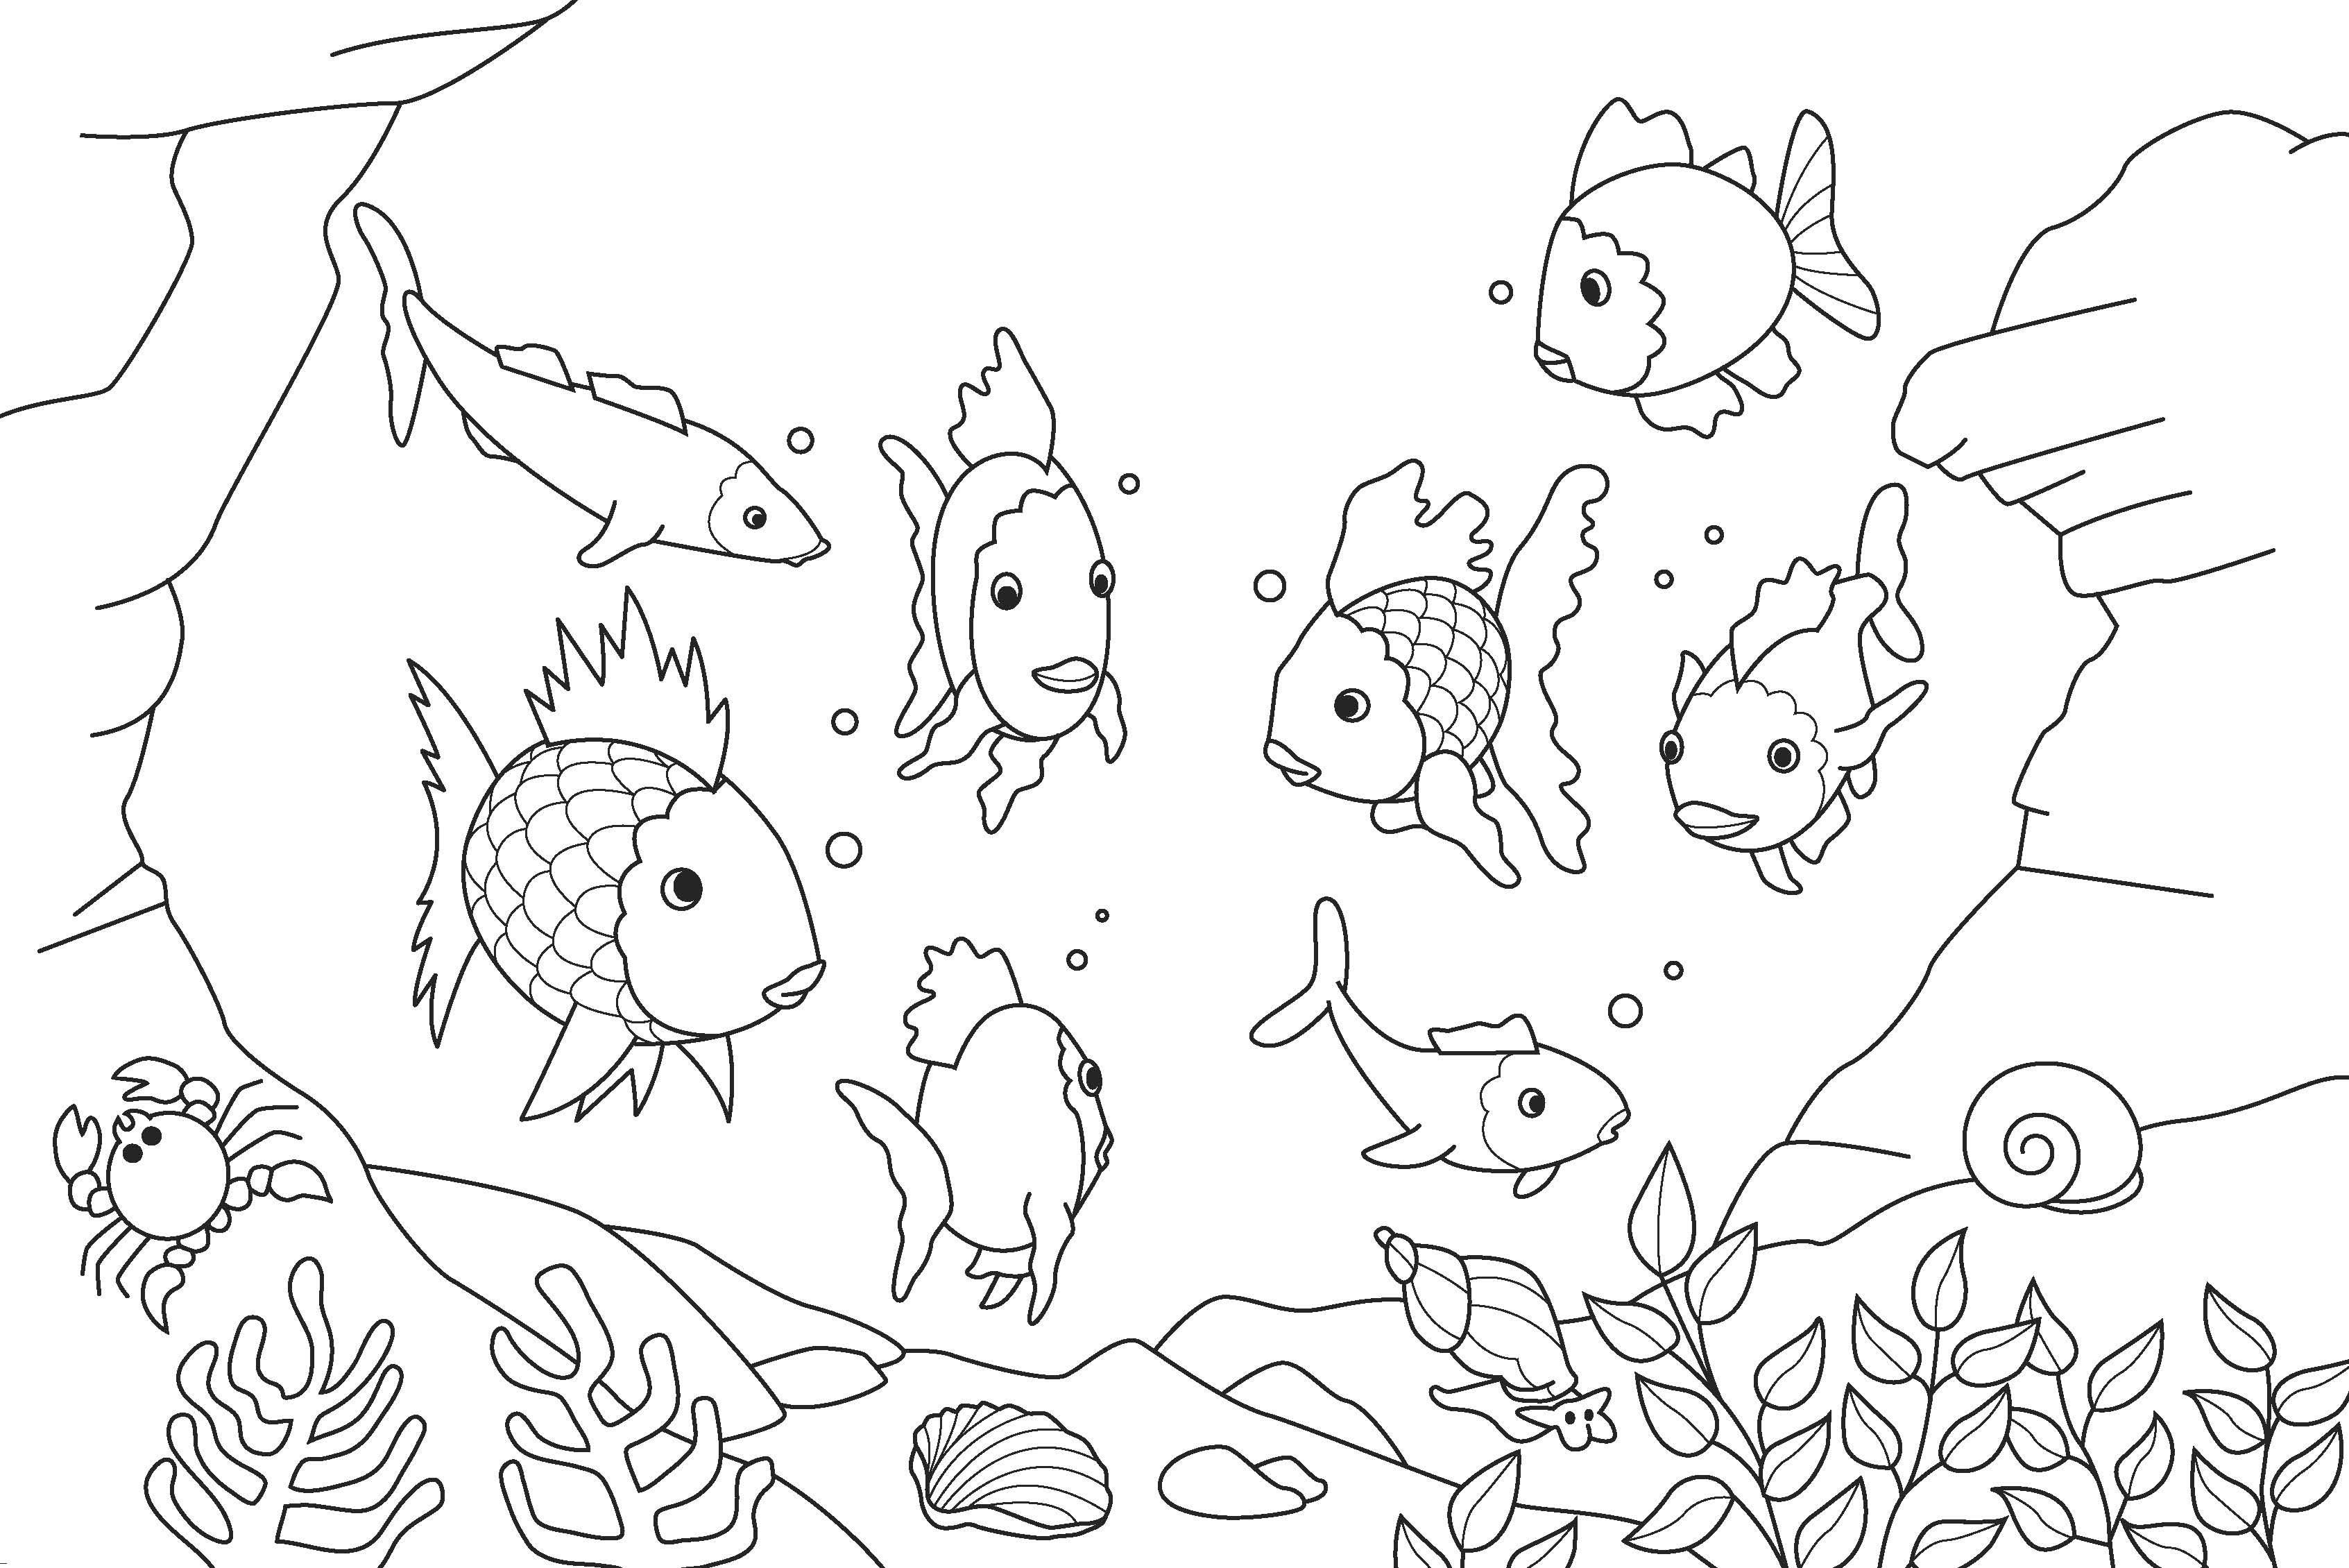 fish coloring pages kids - Coloring Book For Kids Free